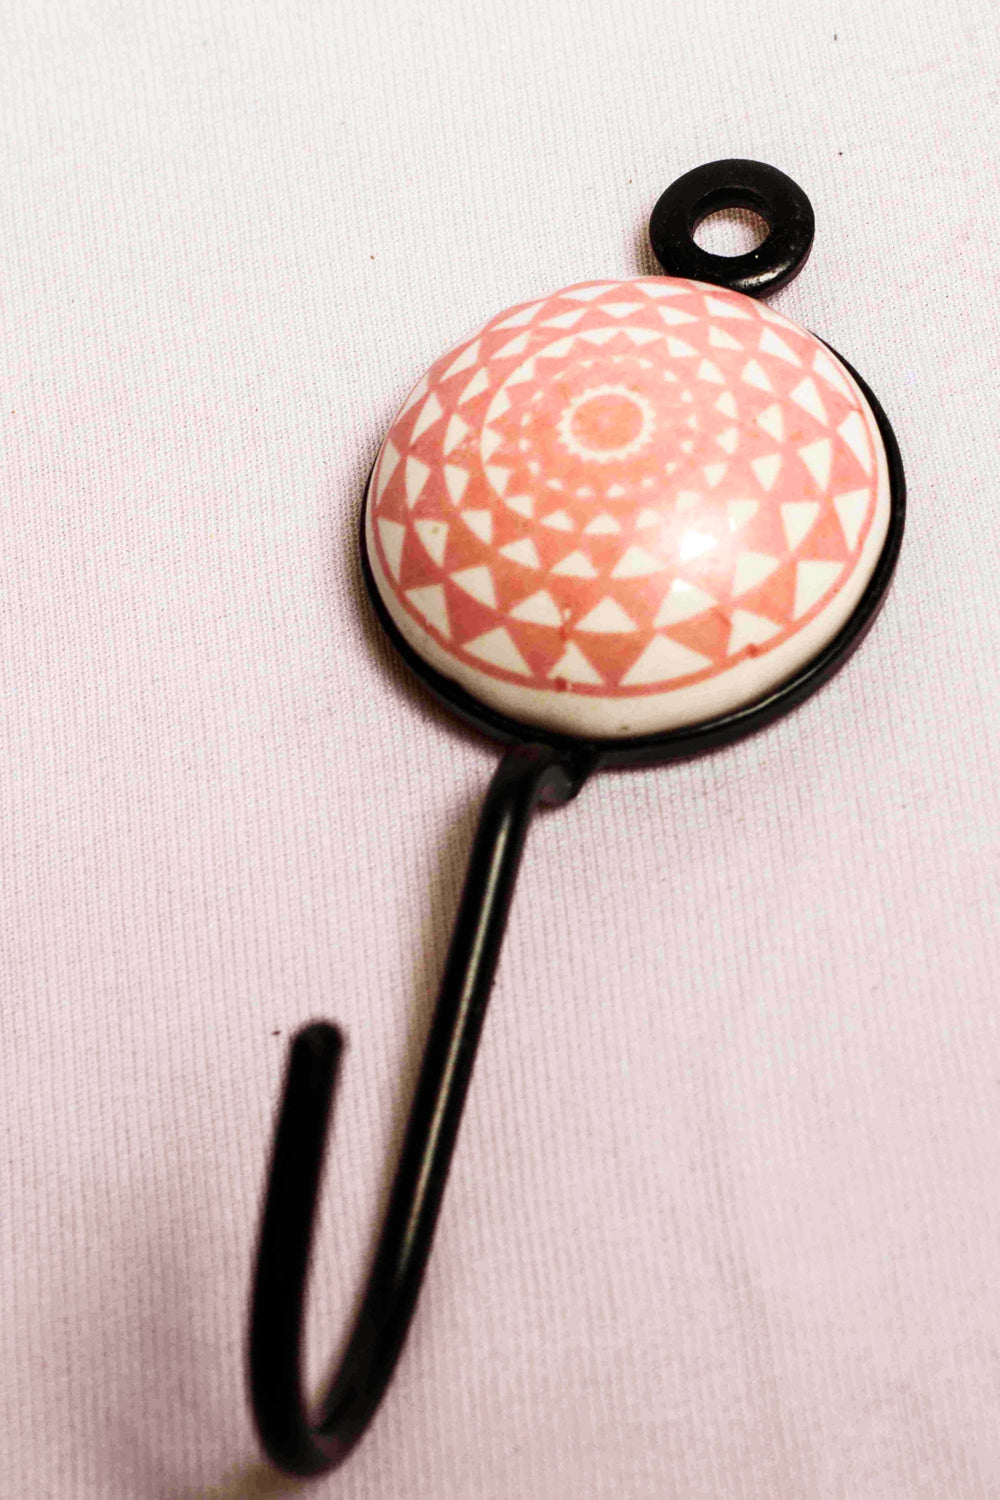 Single ceramic tile round wall hook in pink with triangular motif